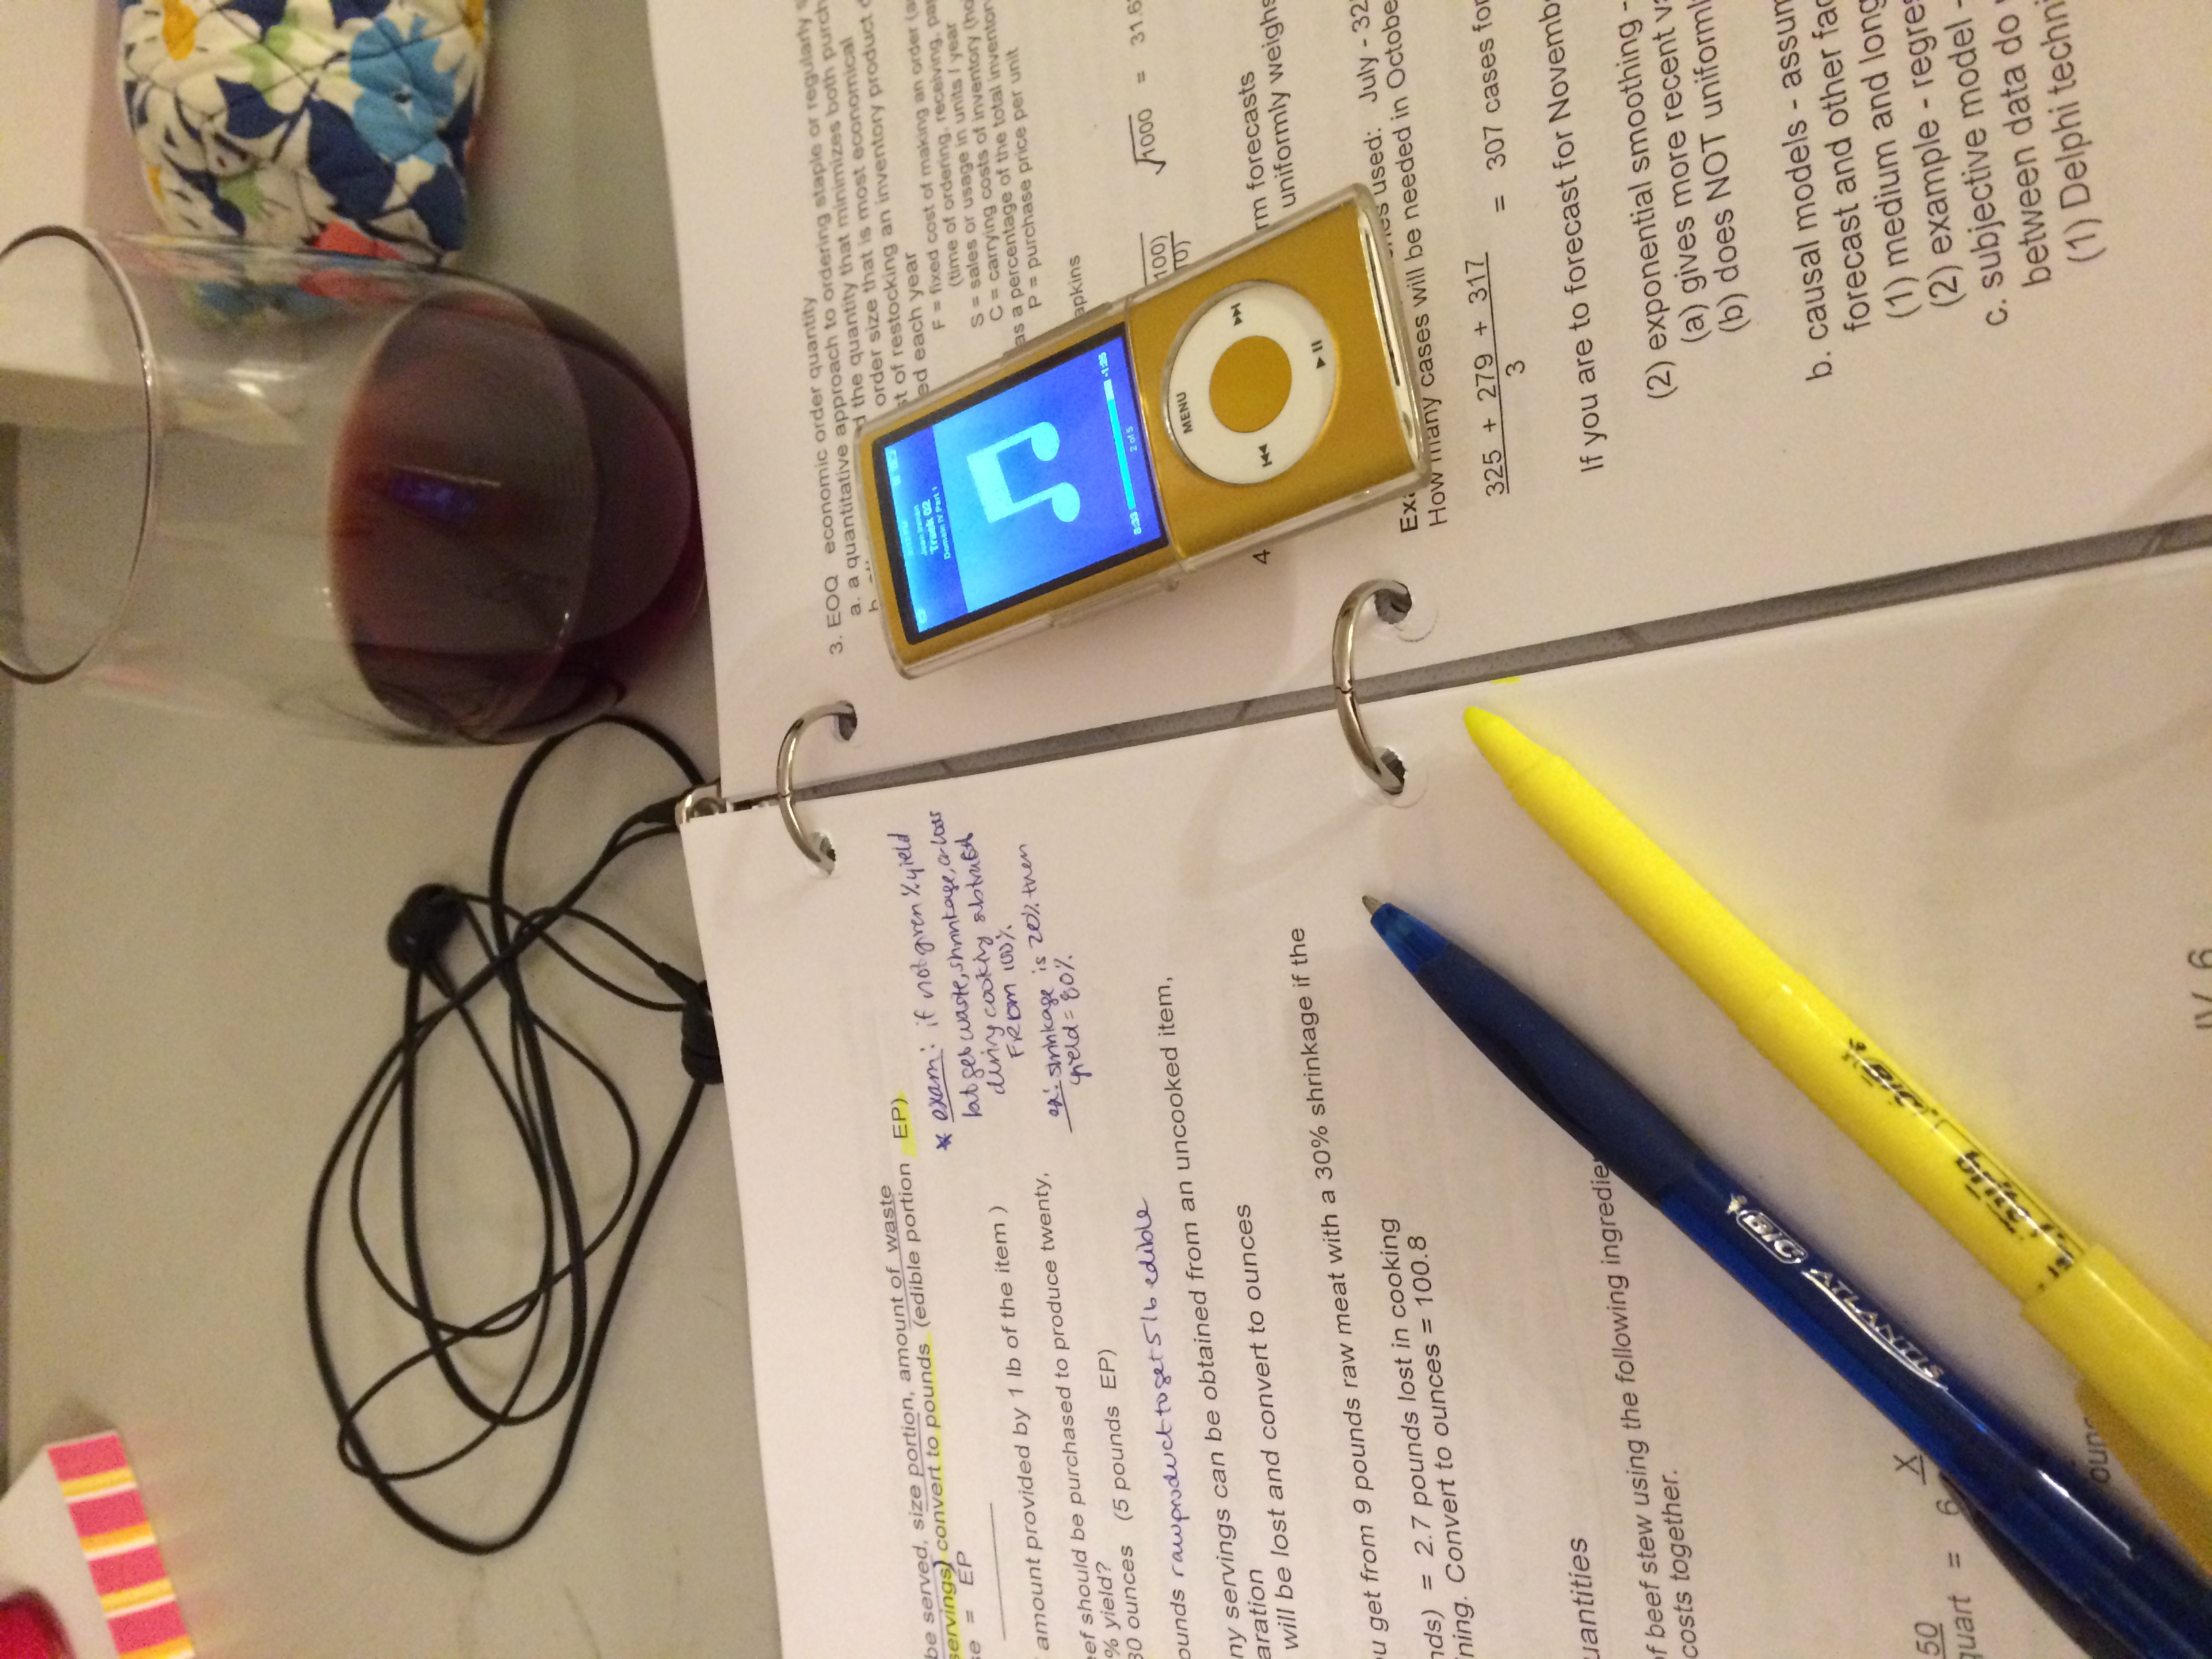 a glass of red wine goes great with my study guide ;)